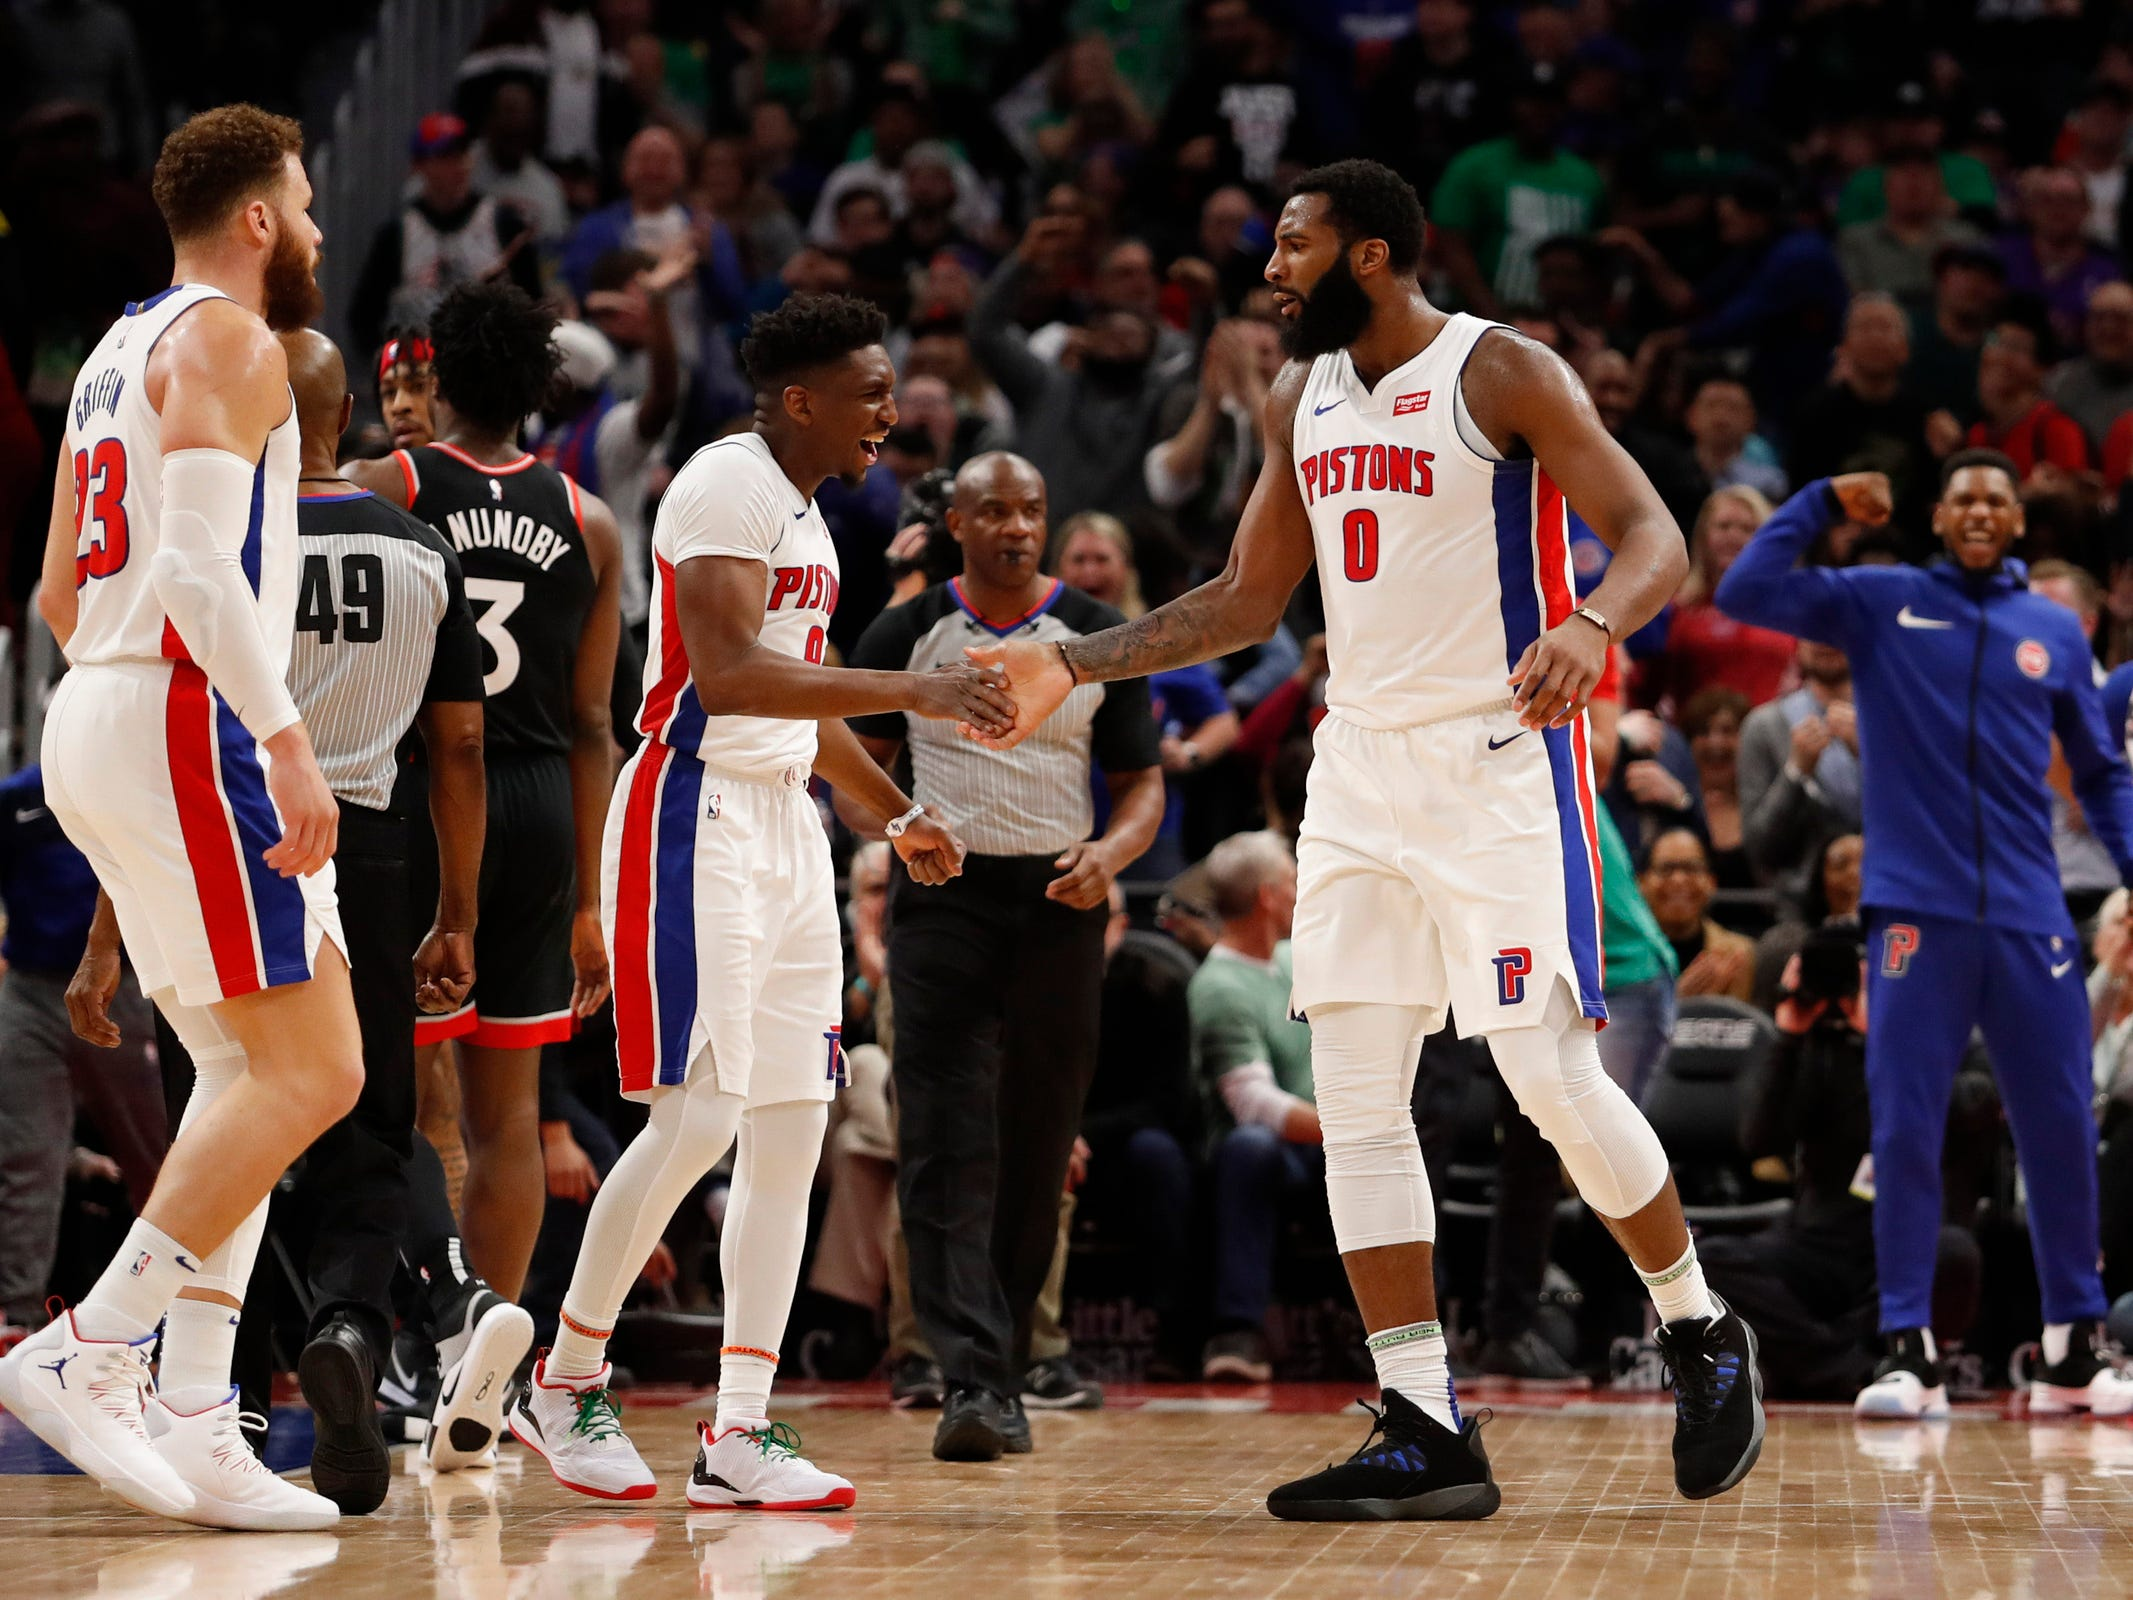 Detroit Pistons center Andre Drummond (0) celebrates with Langston Galloway during the third quarter against the Toronto Raptors at Little Caesars Arena, Sunday, March 17, 2019.